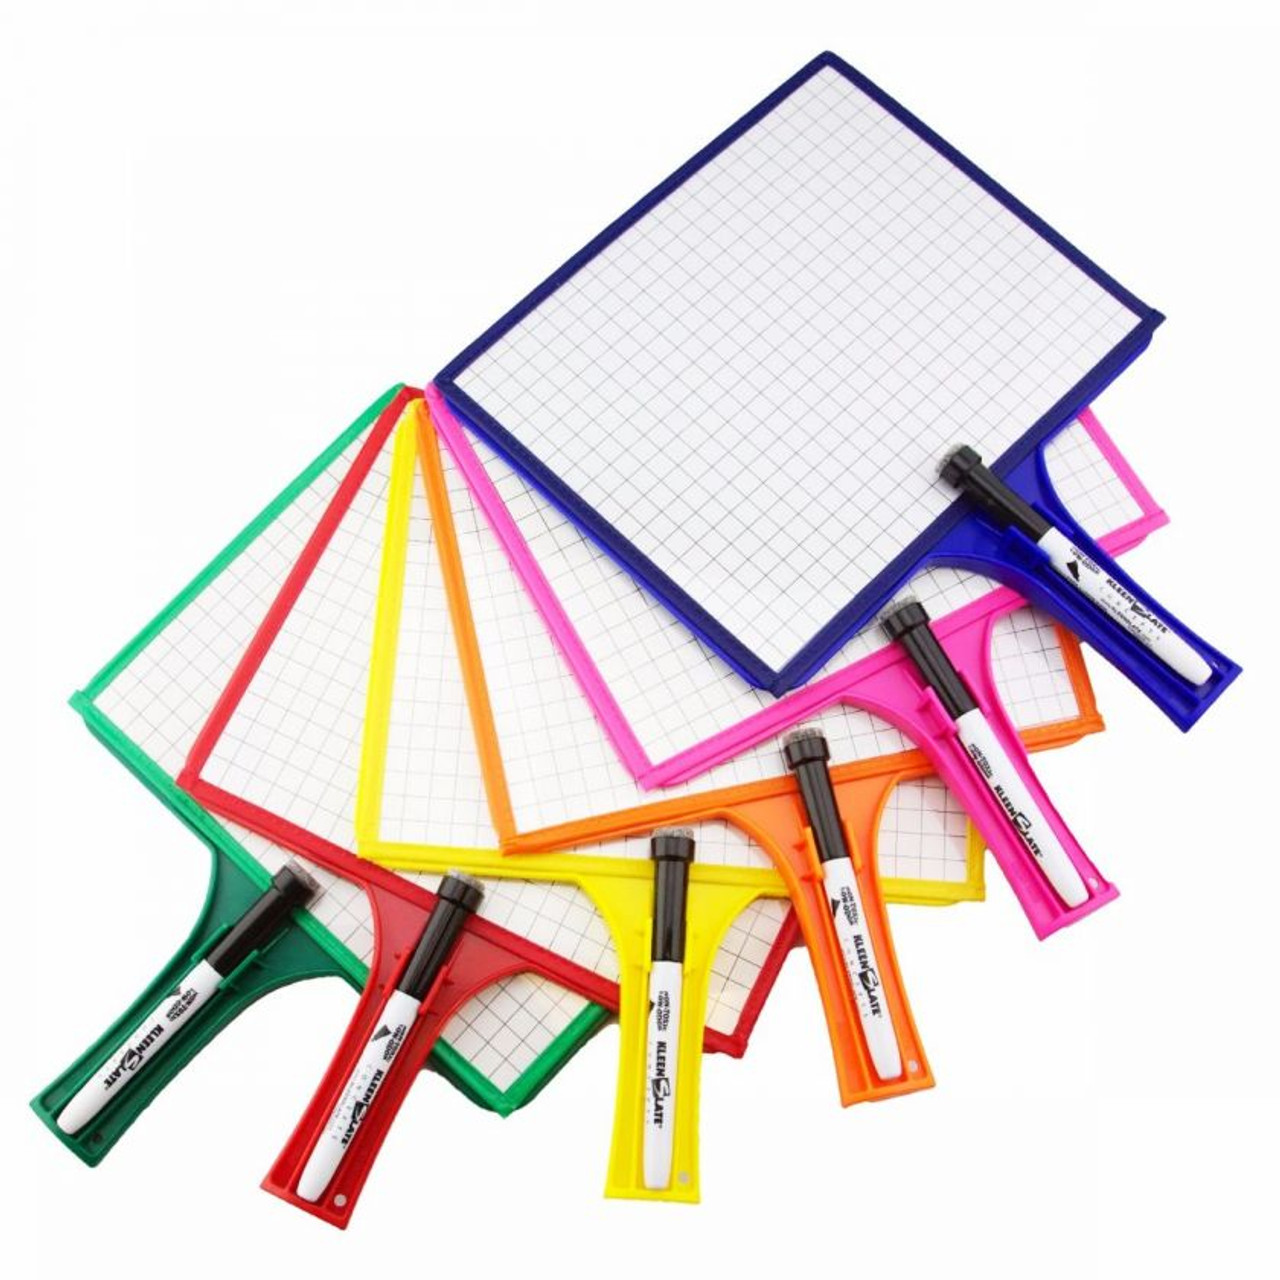 Class Set of 24 Customizable Whiteboards with Dry Erase Sleeves